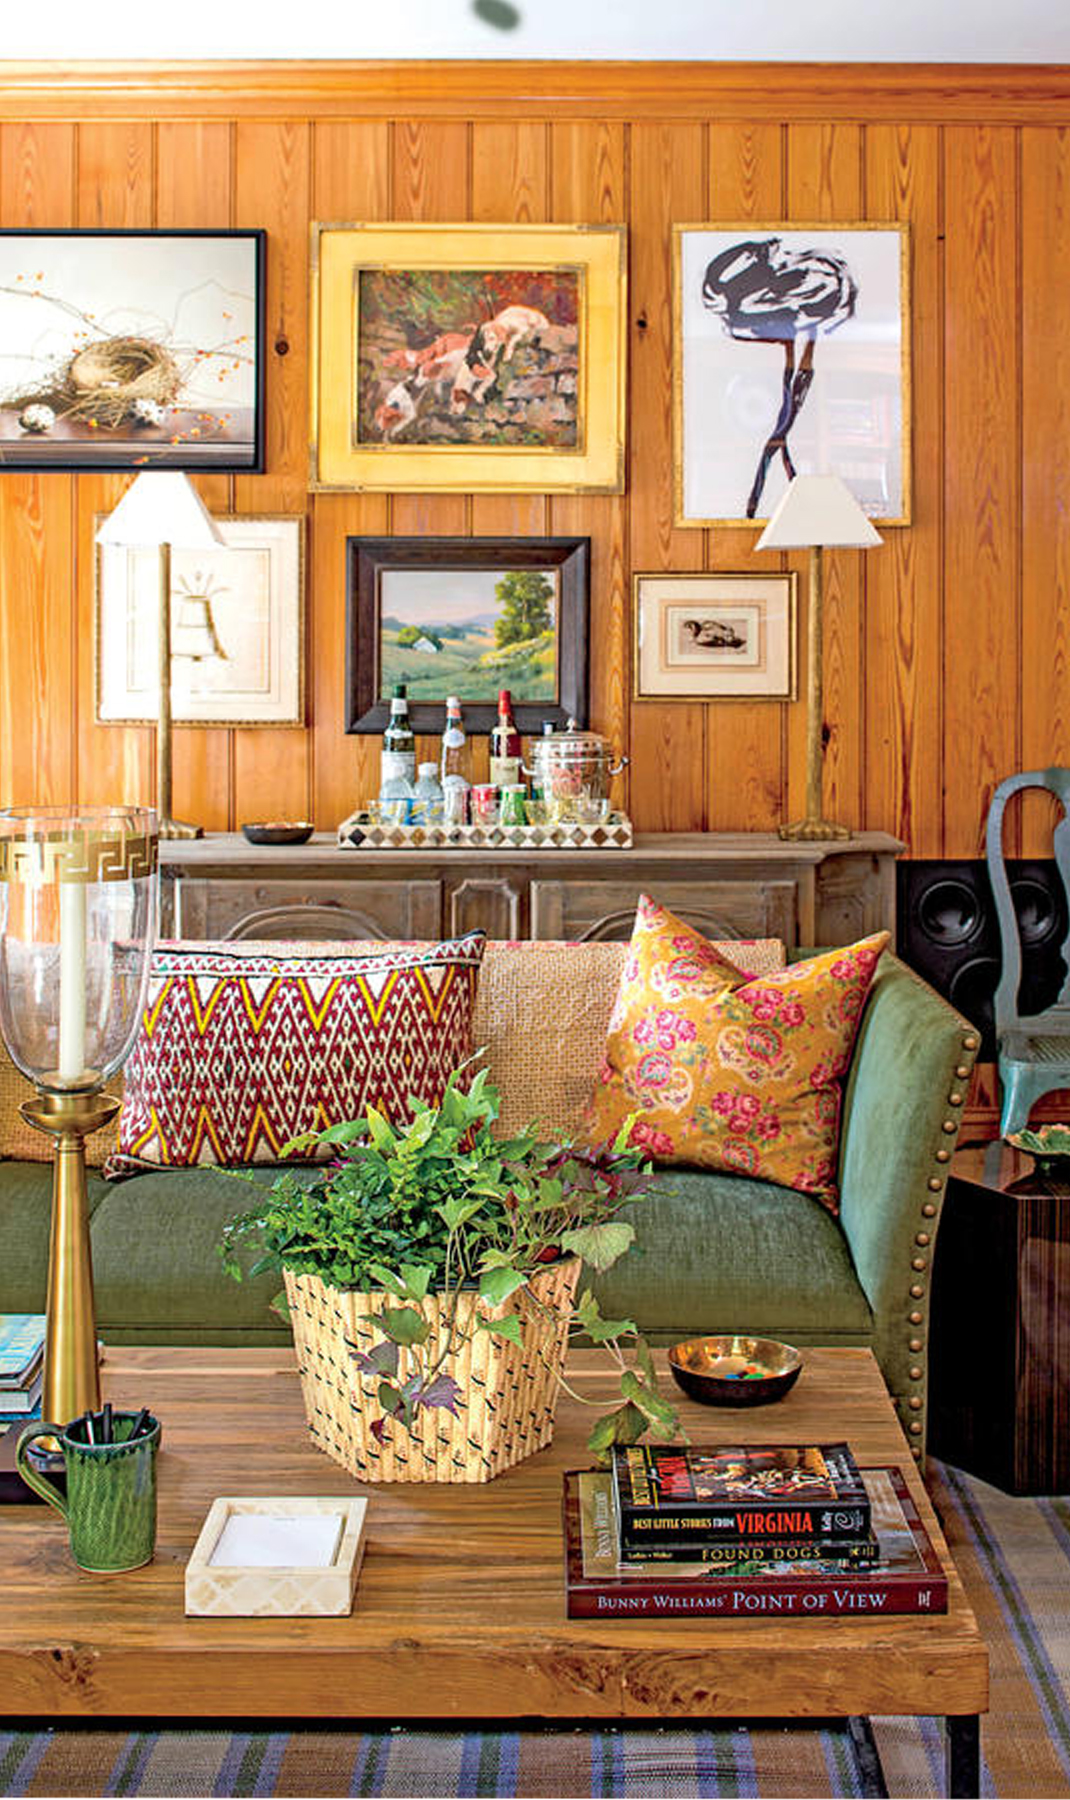 2015 Charlottesville Idea House Tour  Southern Living - 2015